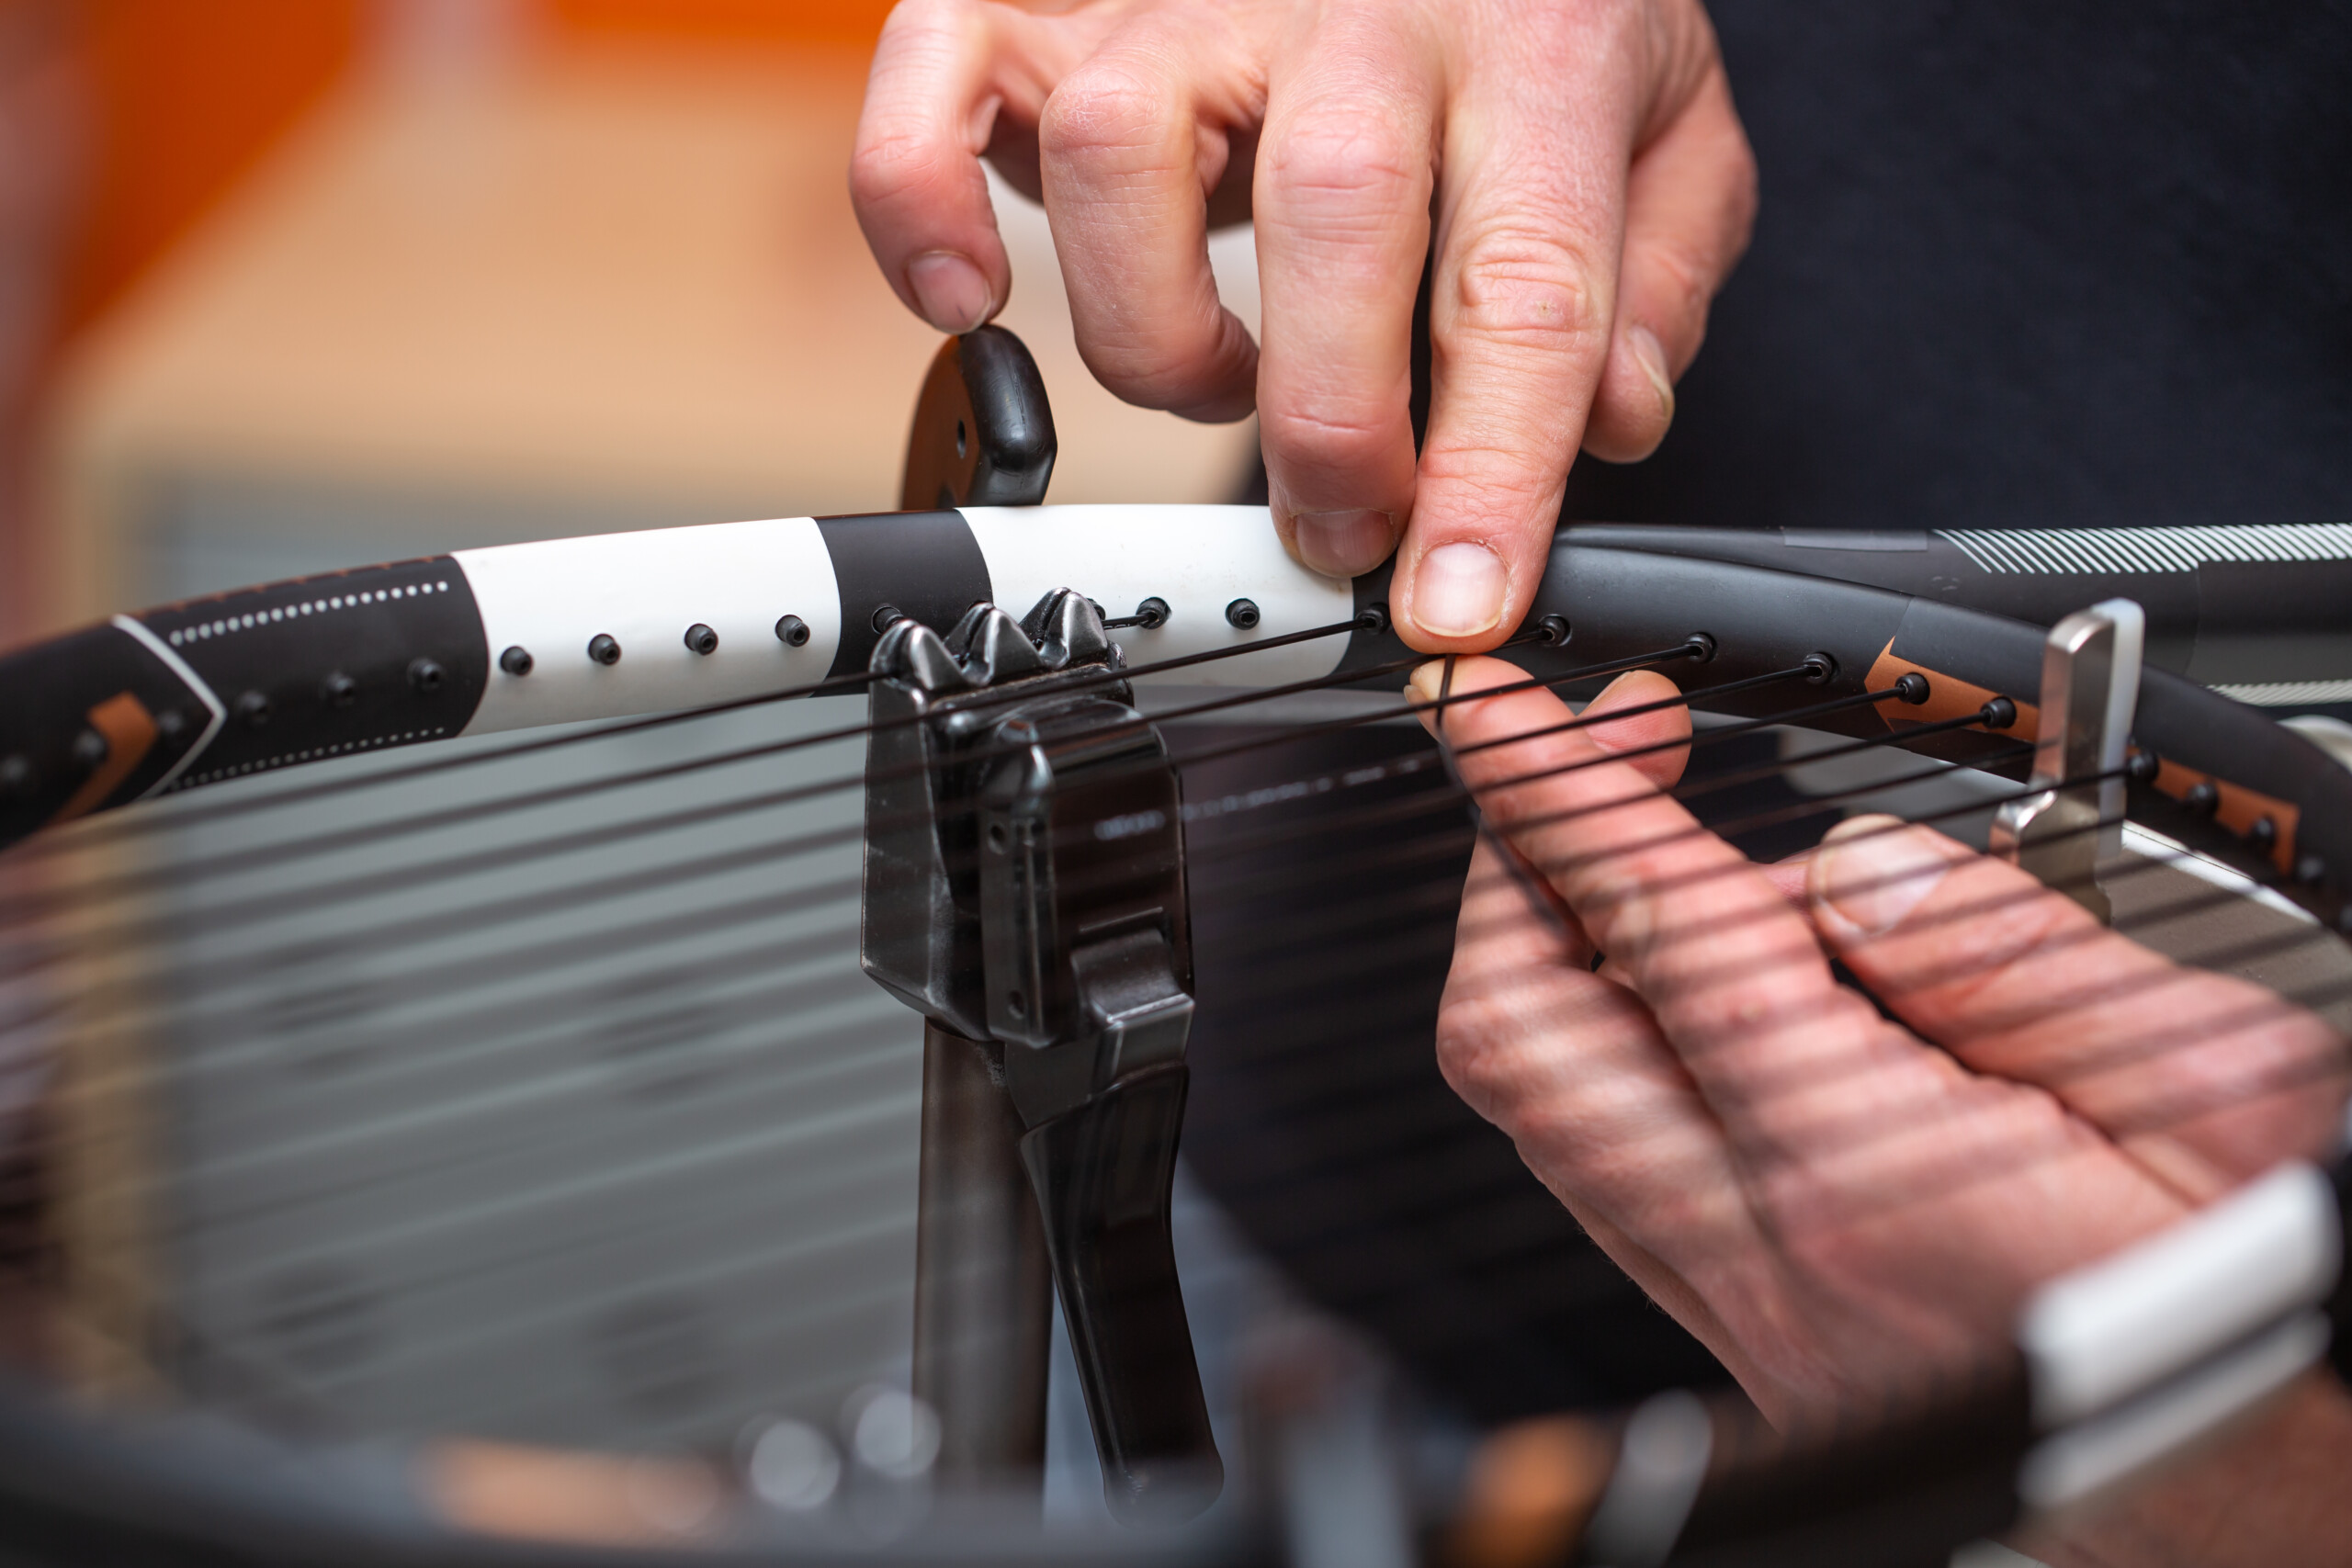 Process of stringing a tennis racket in tennis shop, sport and leisure concept